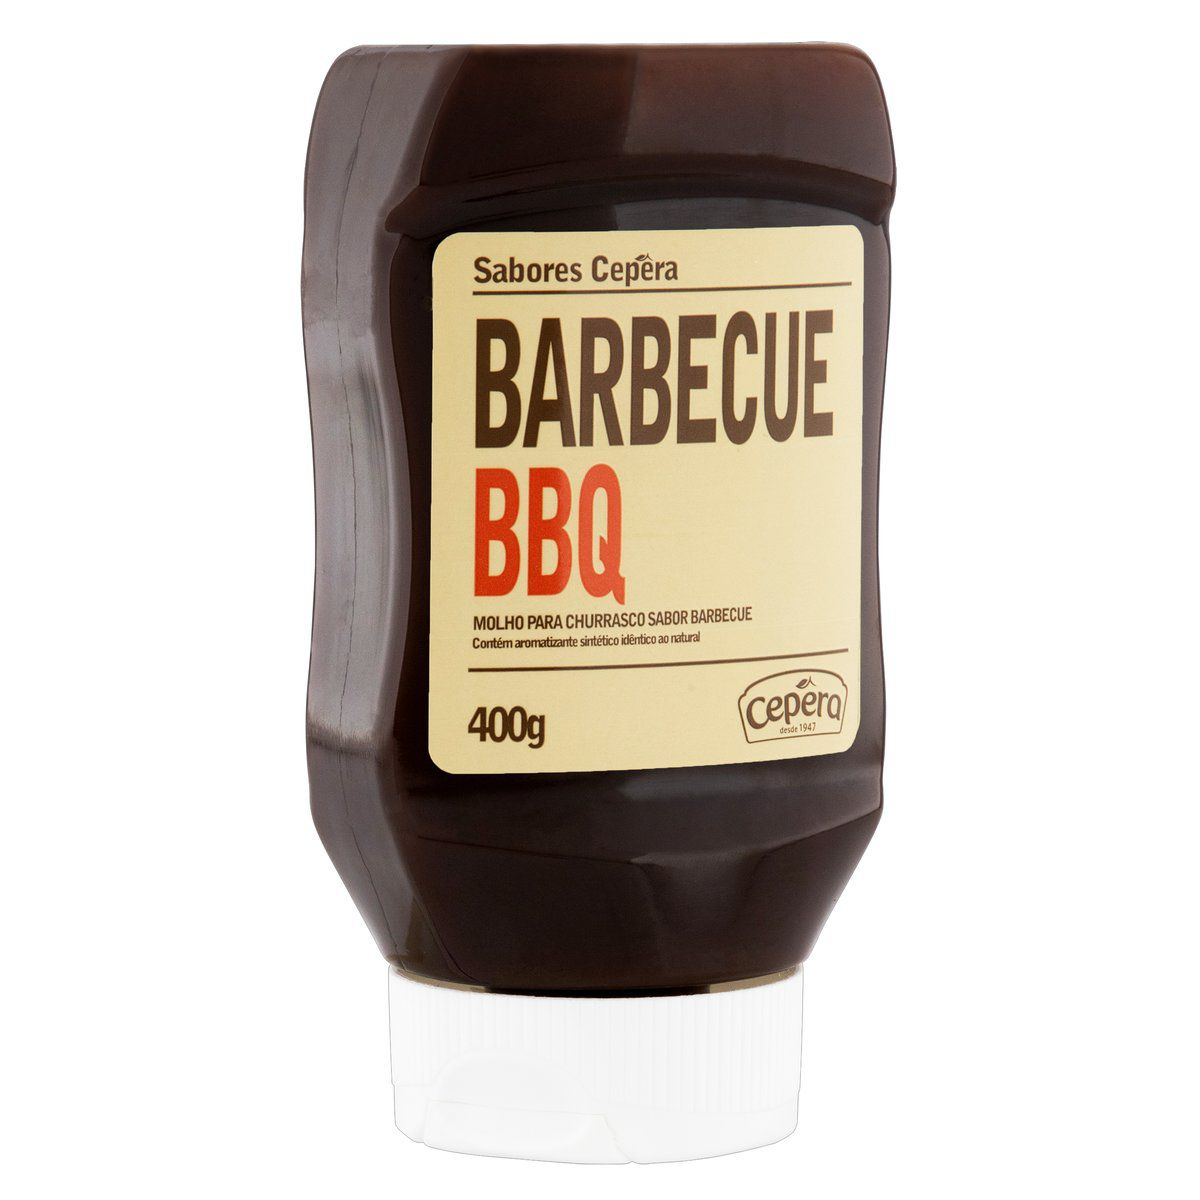 Barbecue BBQ 400g